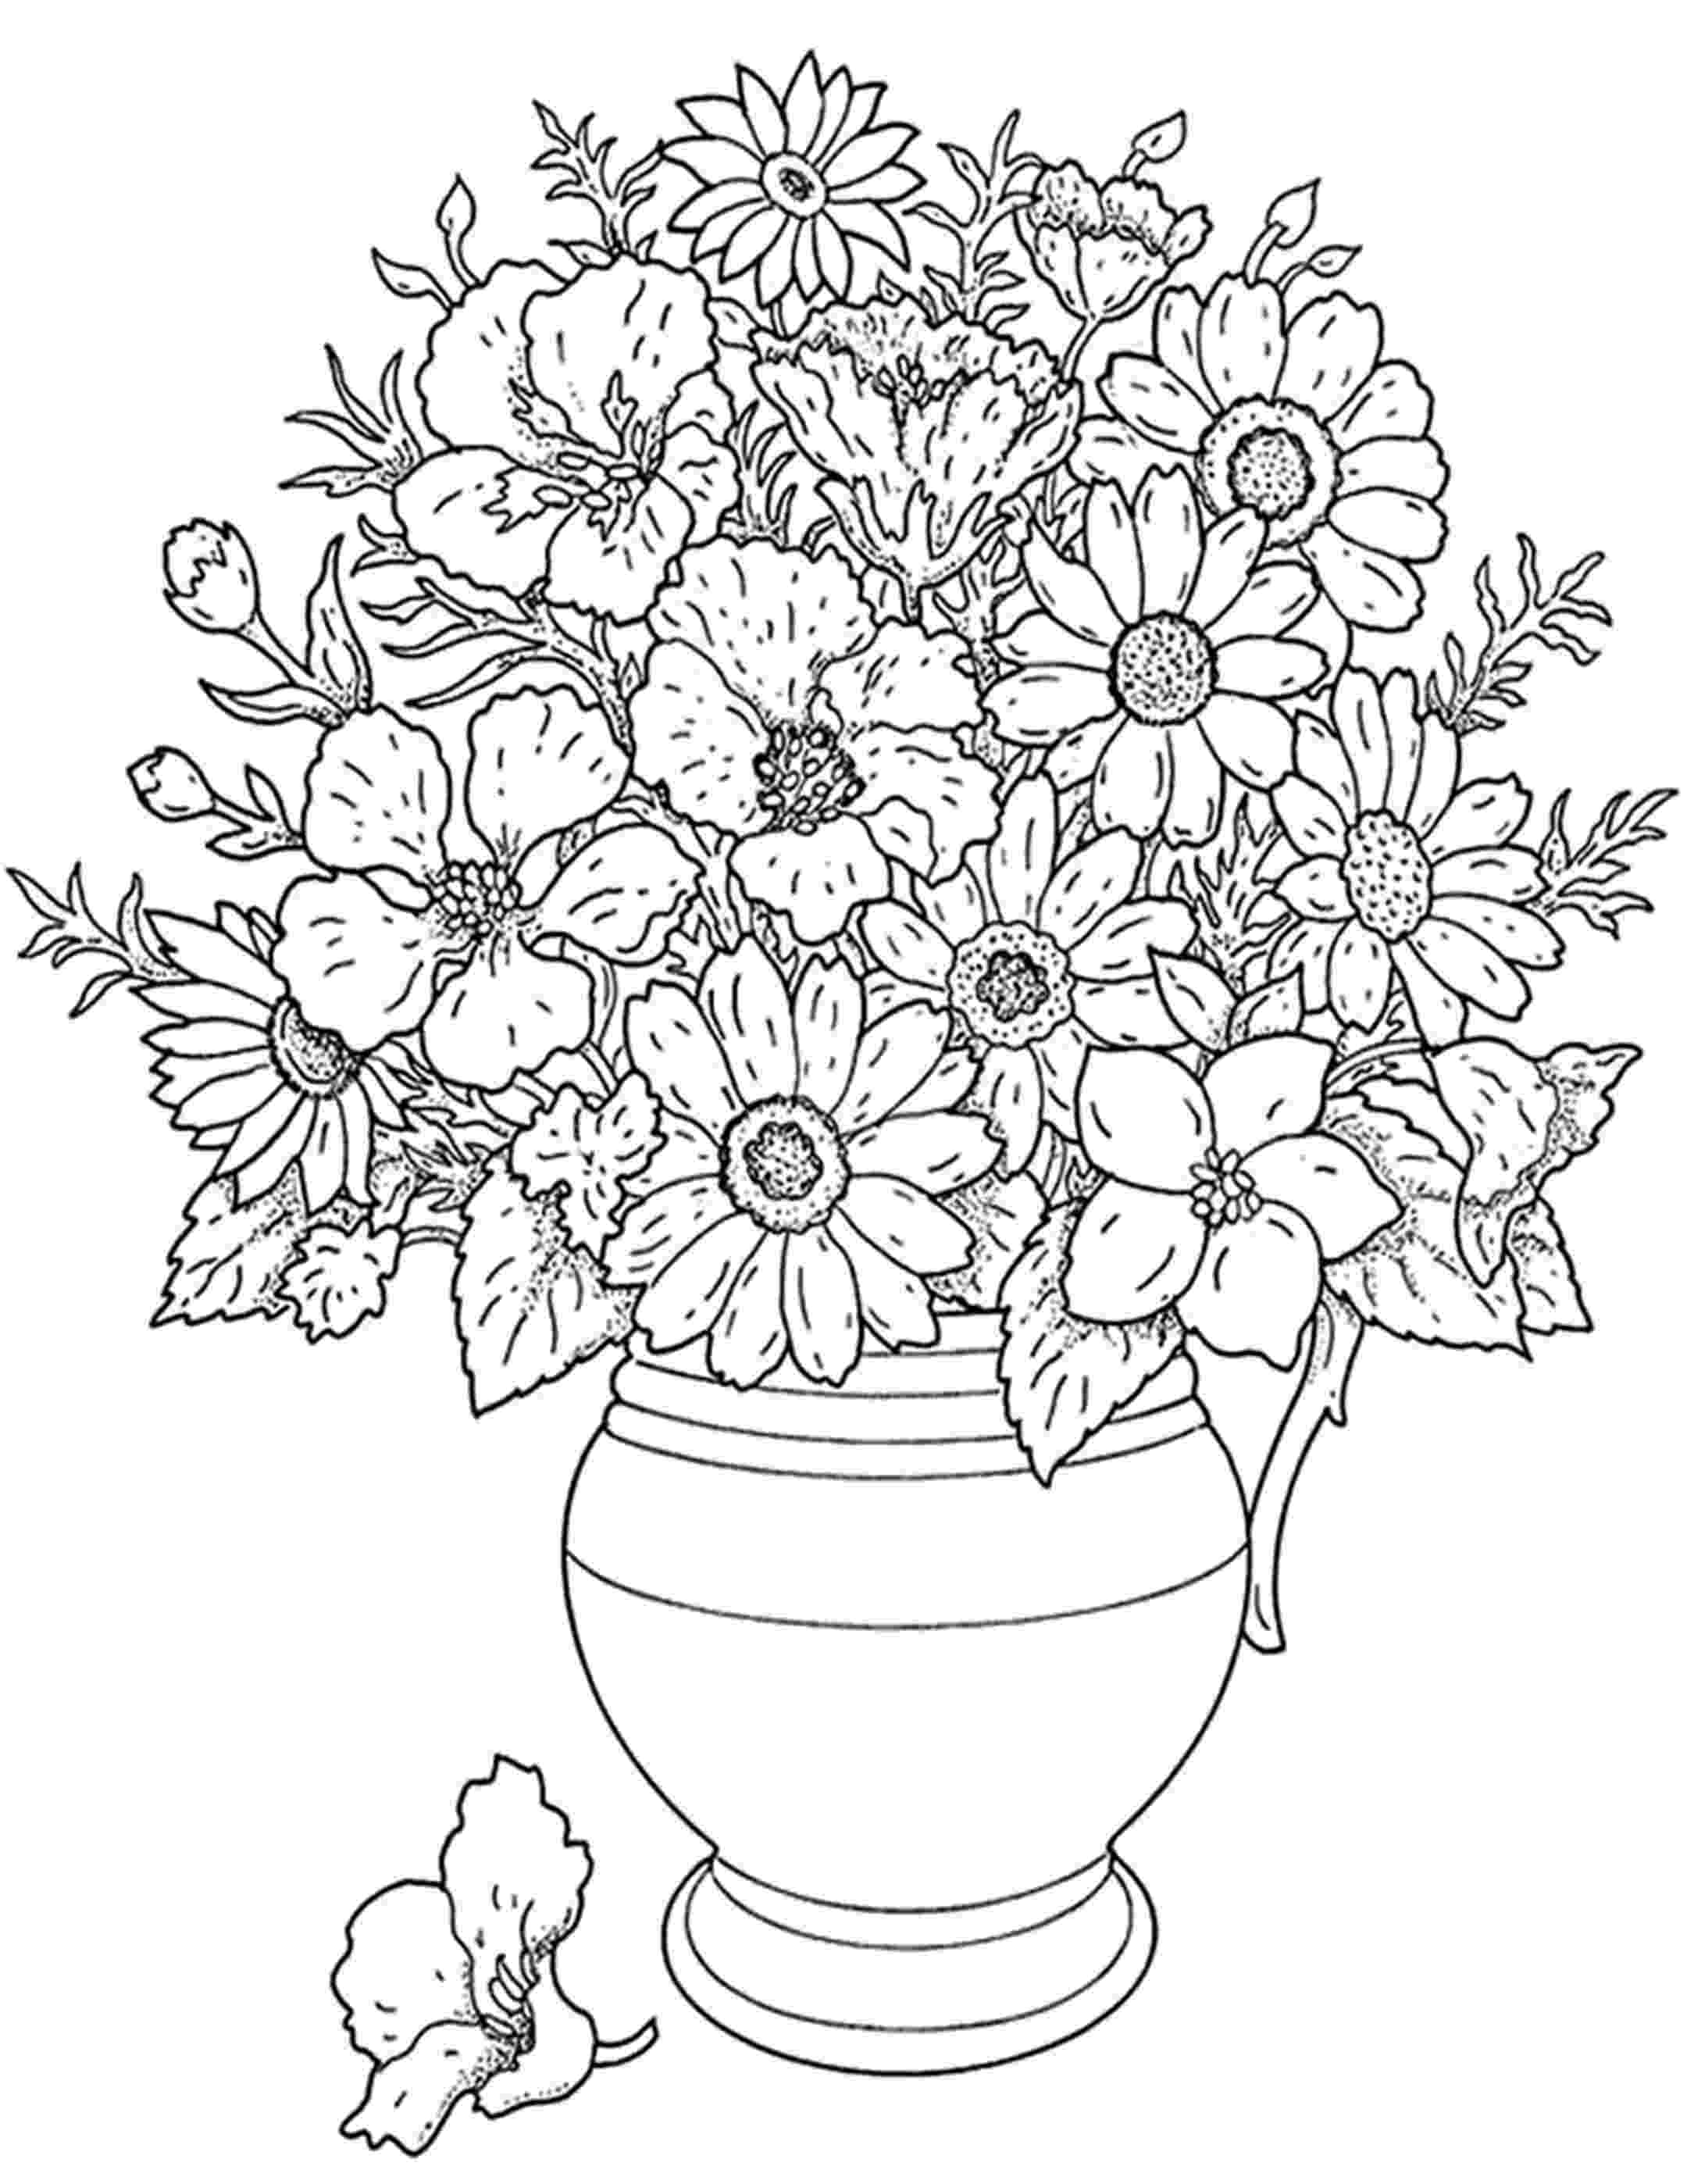 flowers to print and colour free printable flower coloring pages for kids best colour print to flowers and